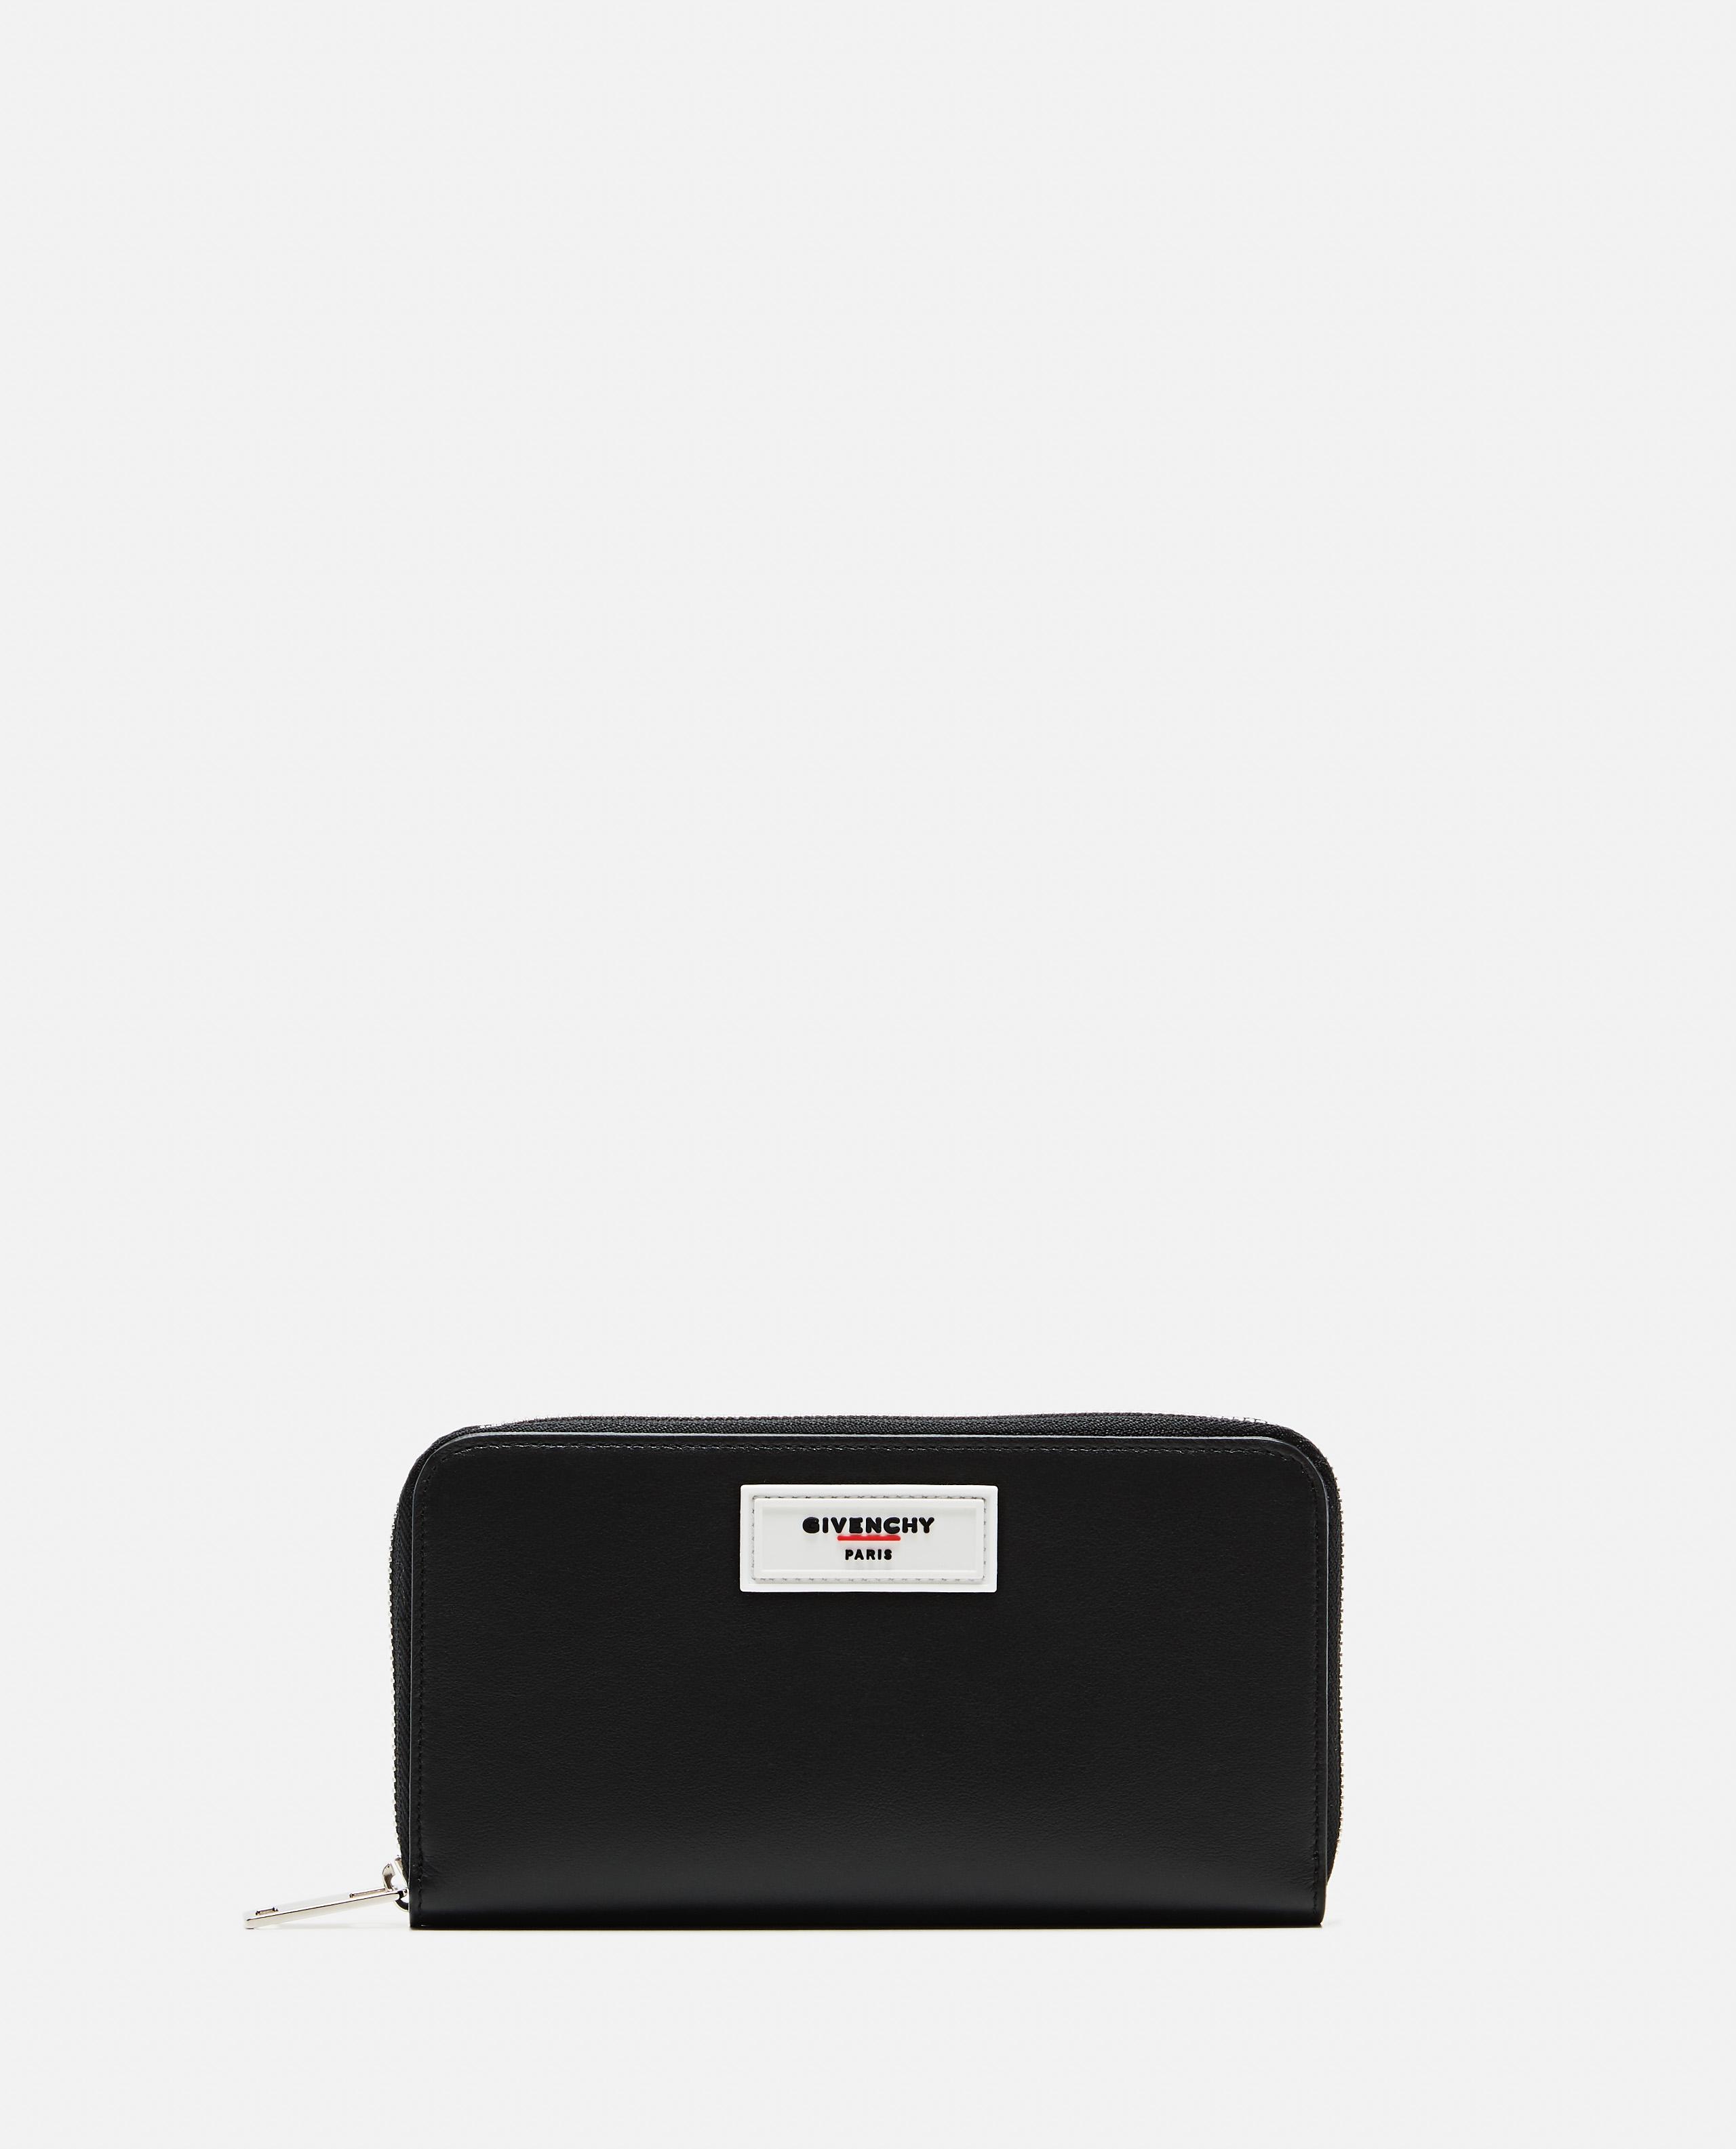 Black smooth leather wallet